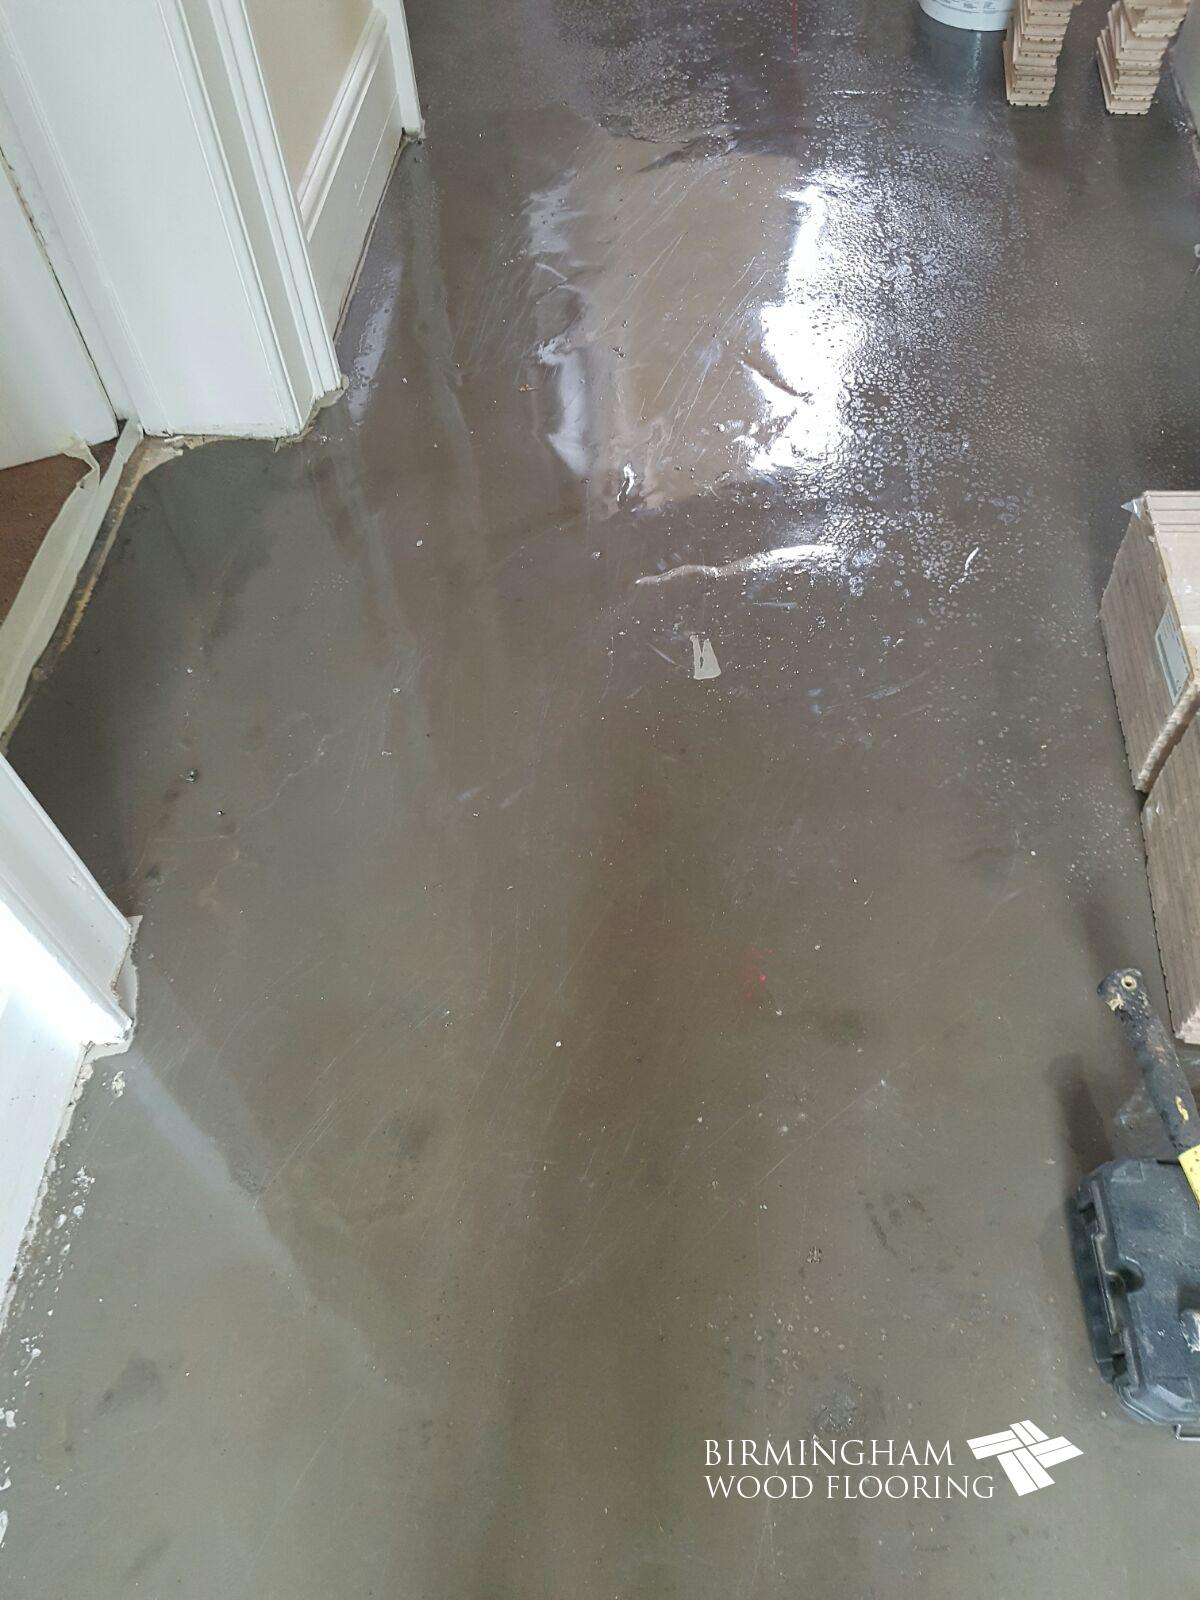 Bona-R410-Dpm-over-screed-floor-Edgbaston